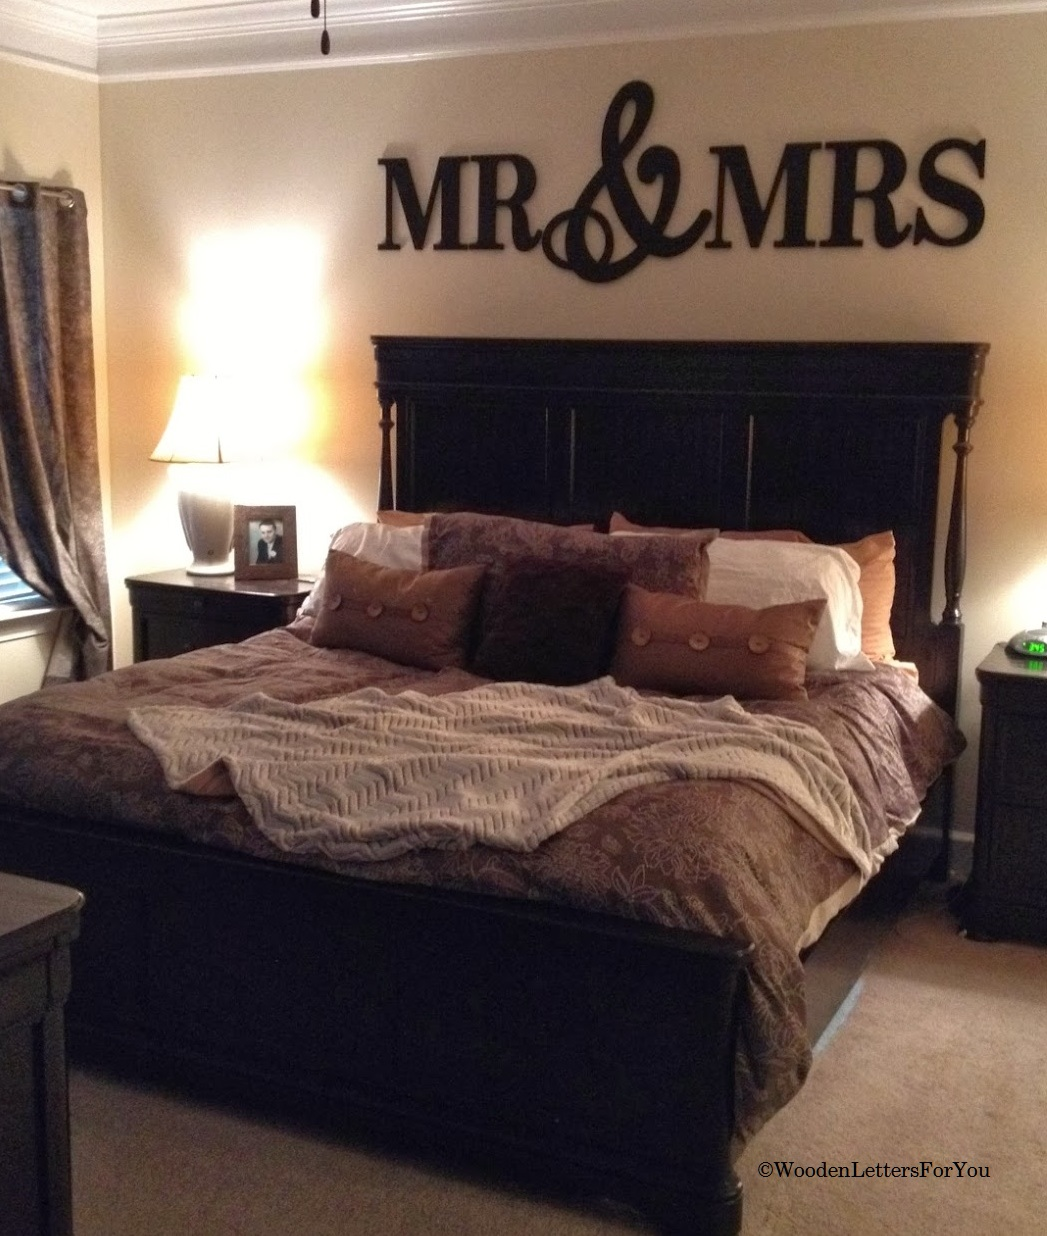 LARGE Wooden Mr & Mrs Wall Décor